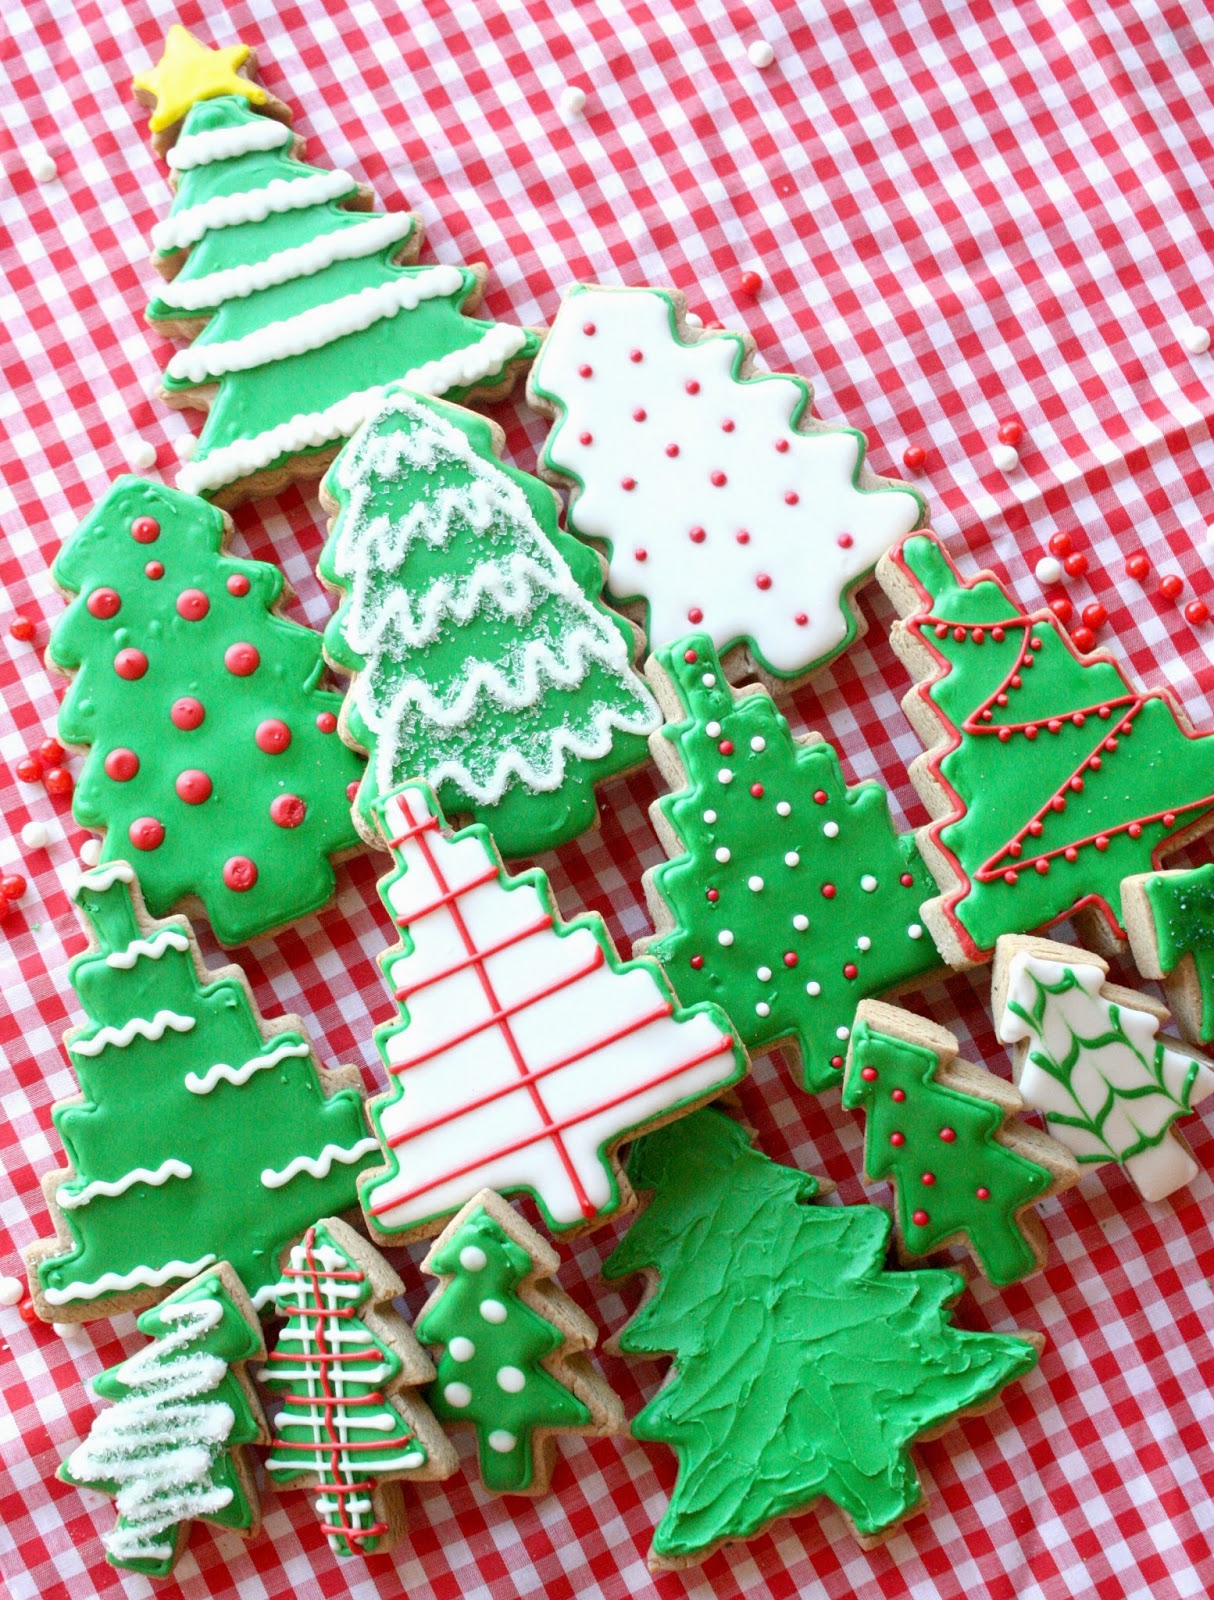 For this project I used my favorite gingerbread cookie recipe, found ...